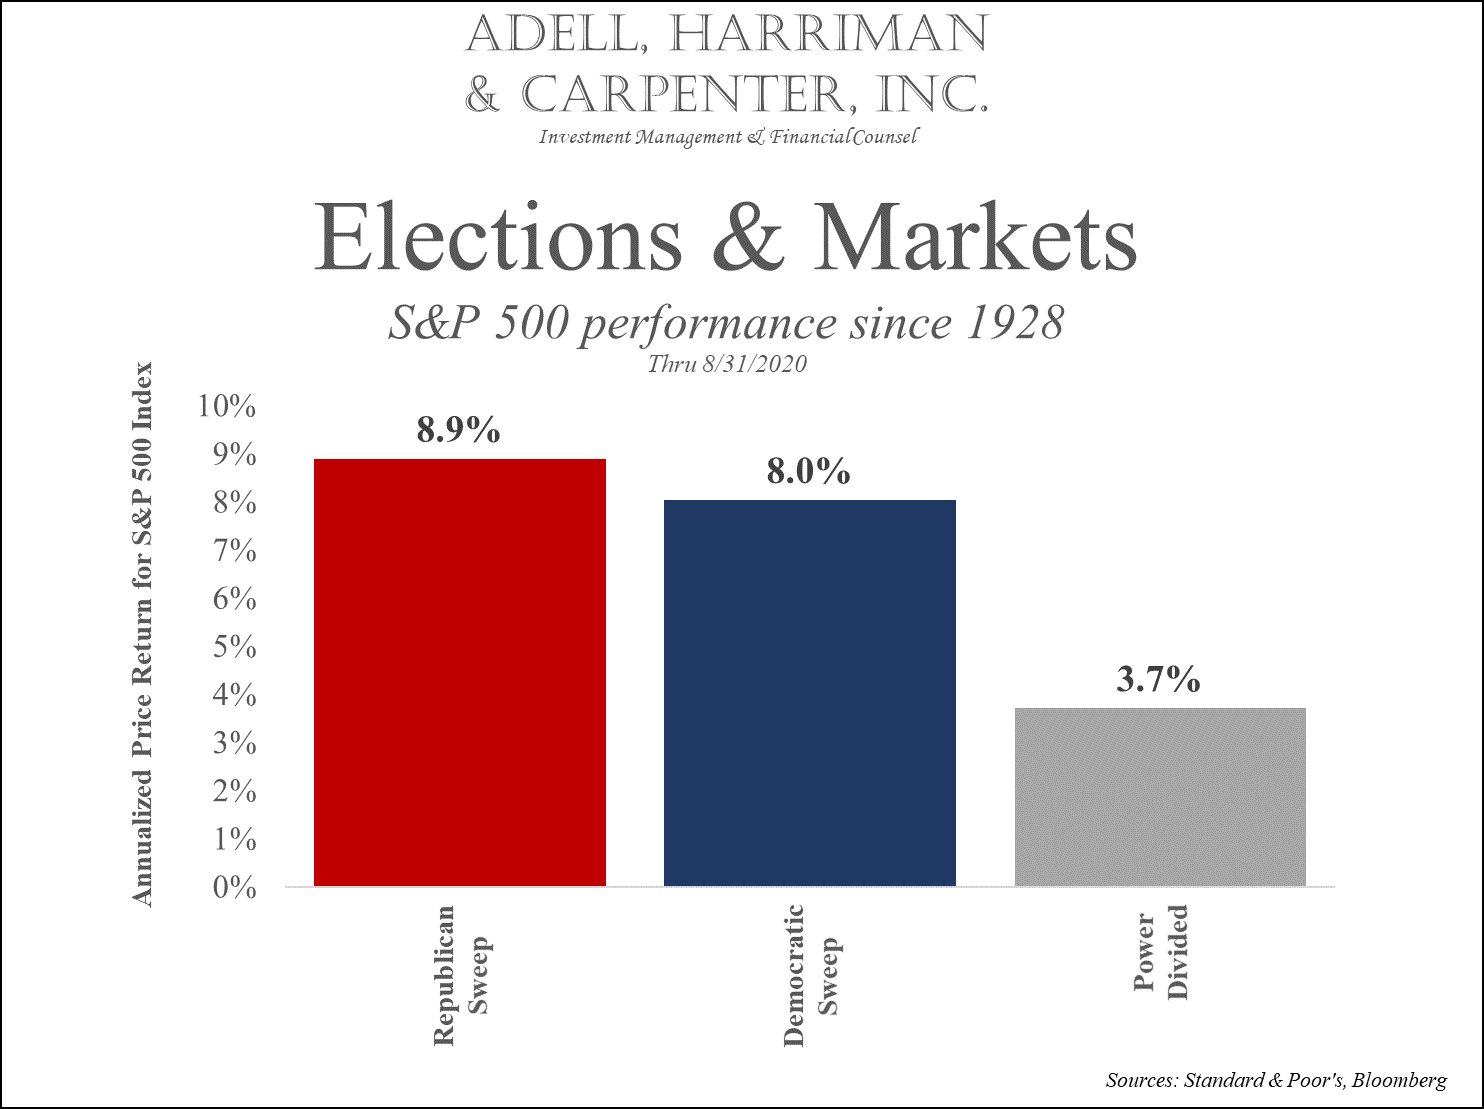 adell harriman and carpenter elections and market performance since 1928